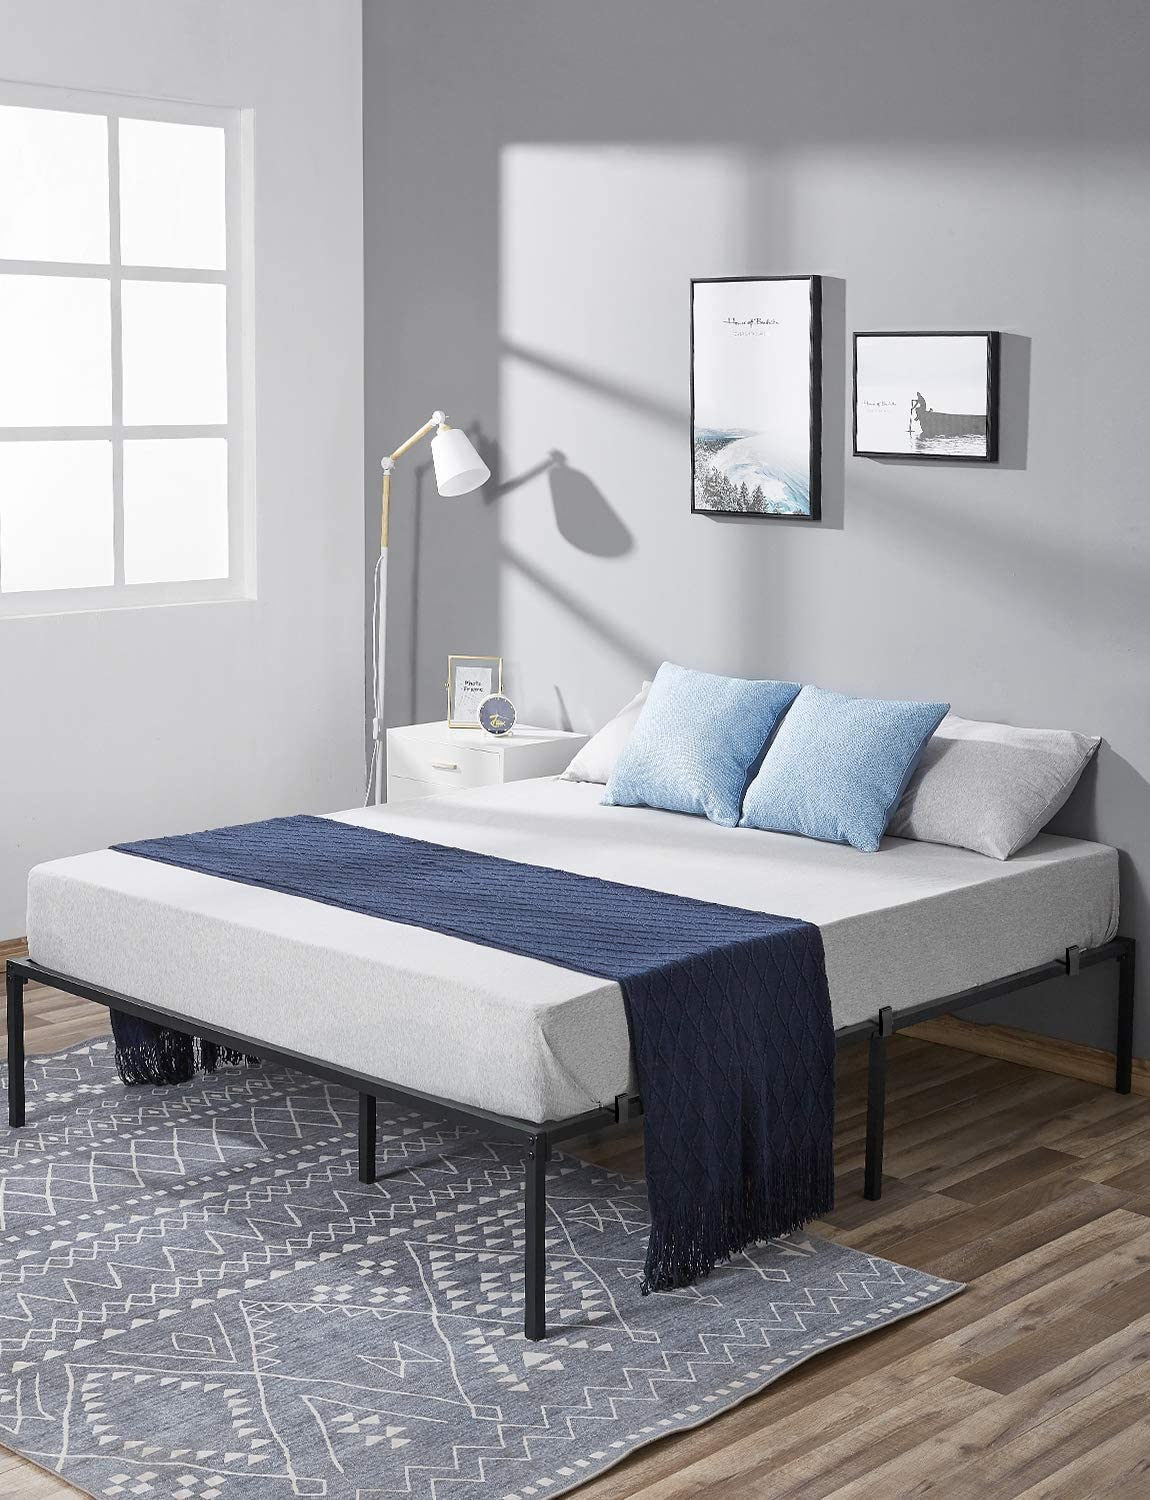 Best full size bed frame no squeak - Your House